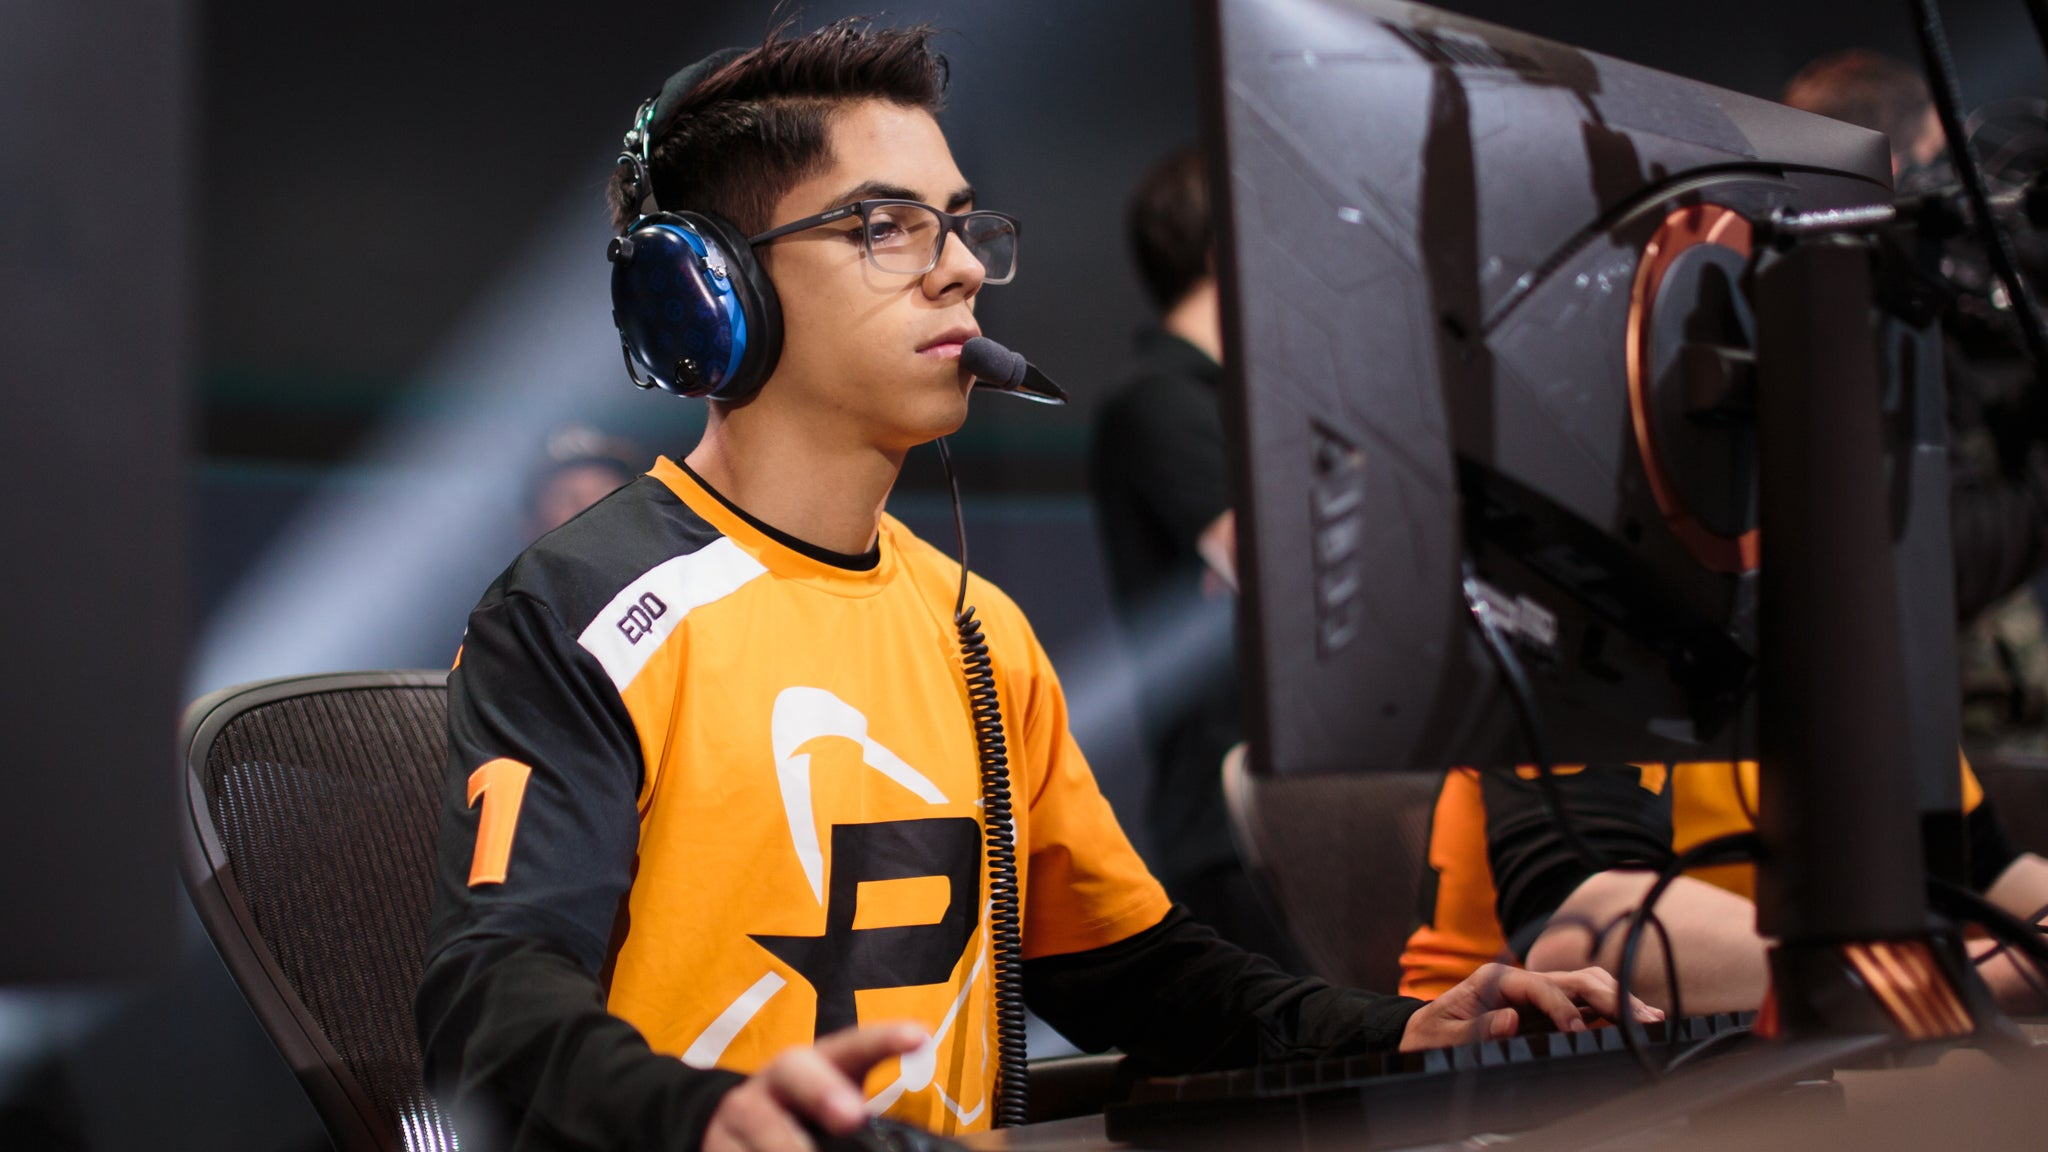 Overwatch League's Eqo Faces Punishment After Making Slant-Eye Gesture On Stream